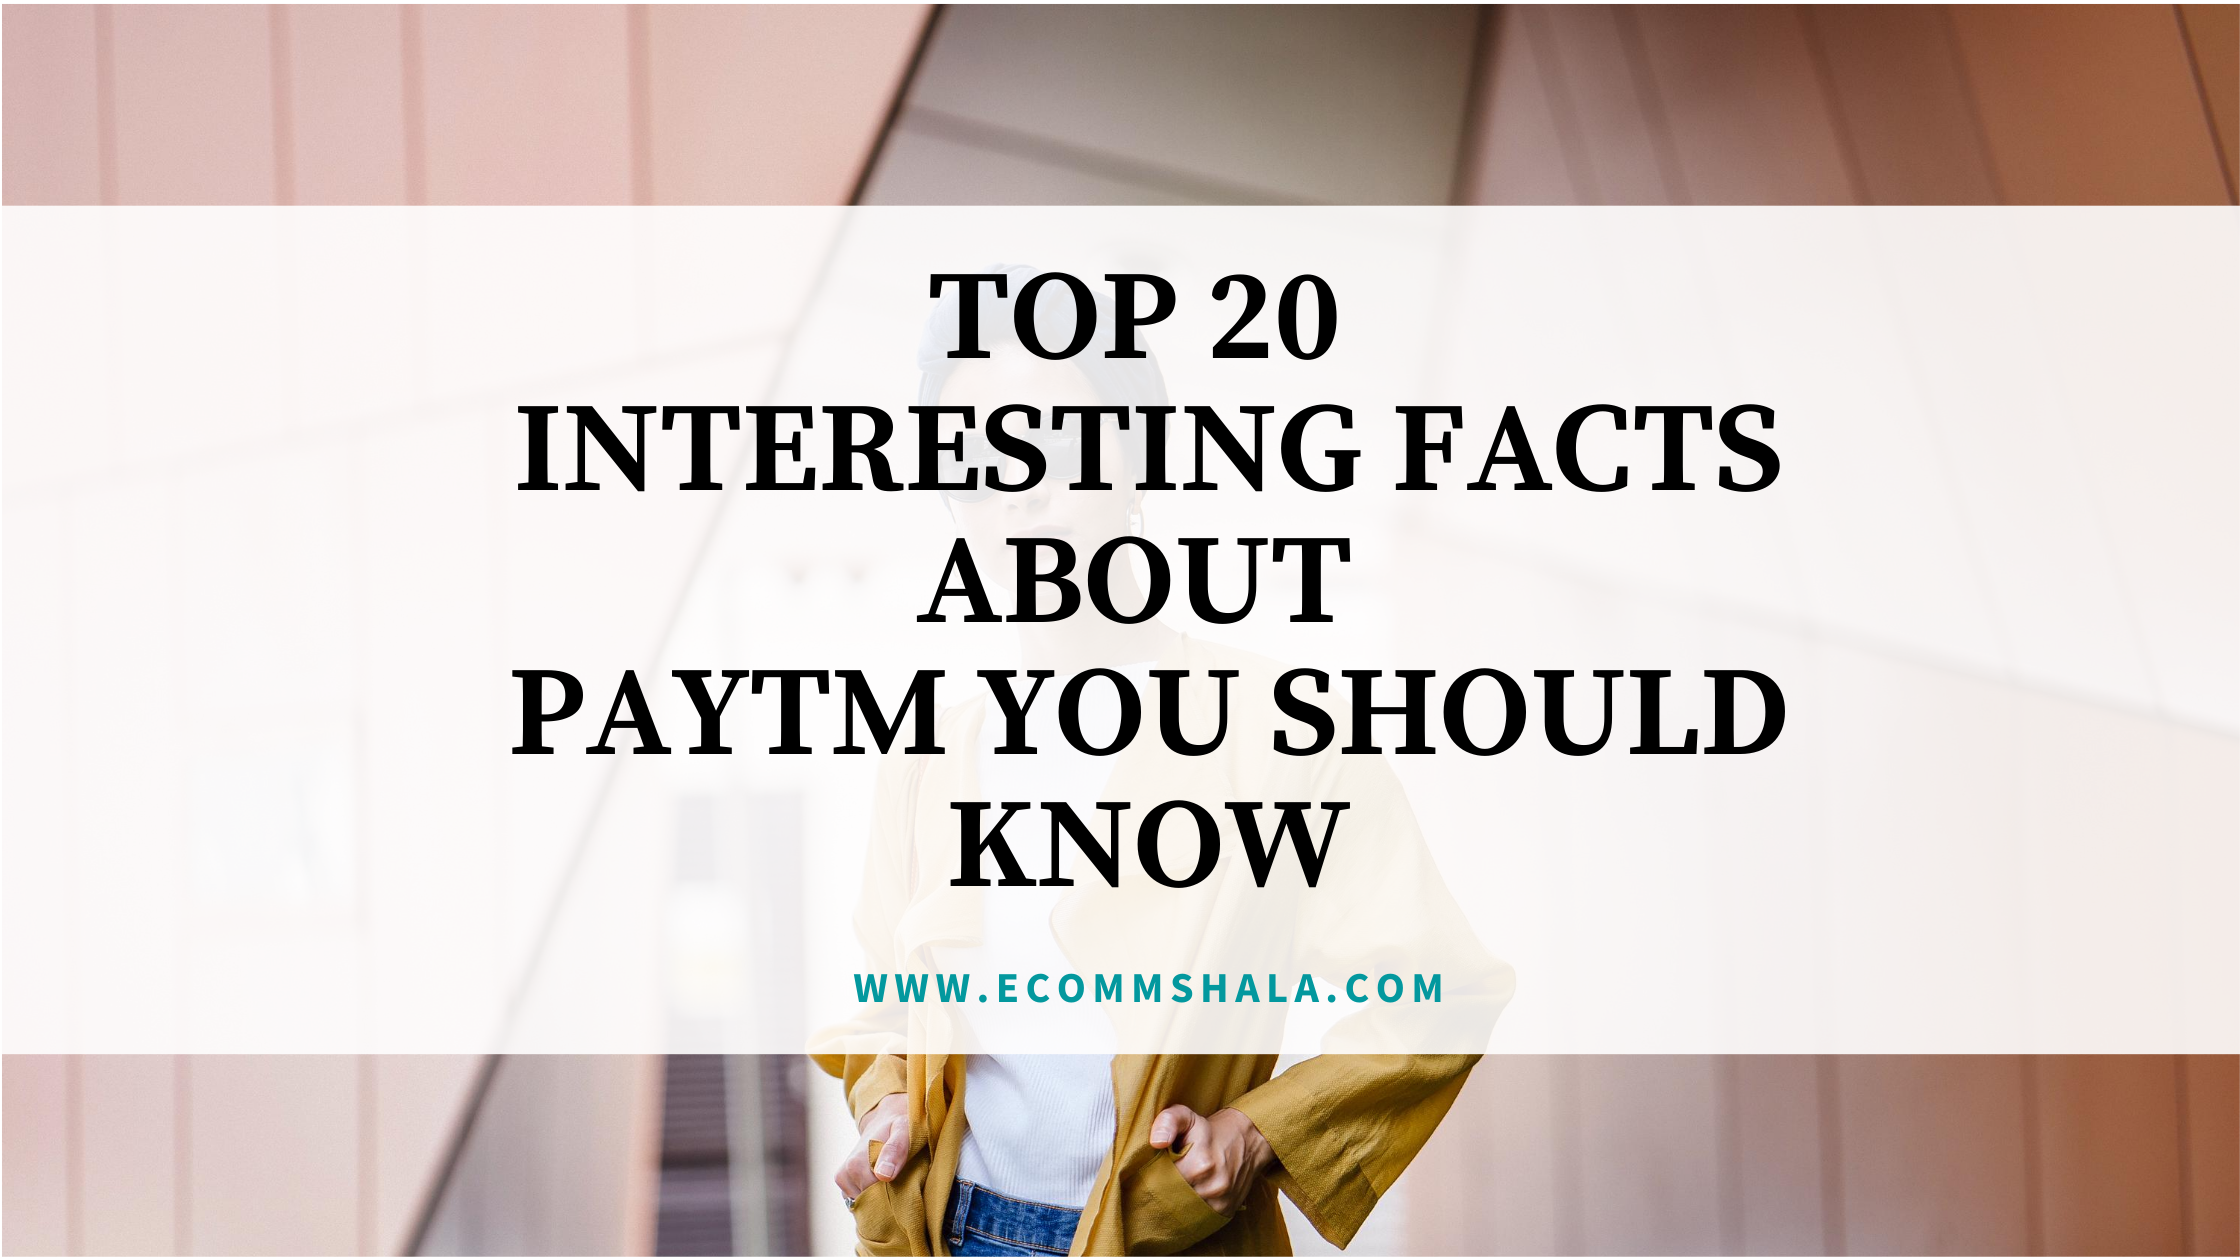 Top 20 Interesting Facts about Paytm You should Know